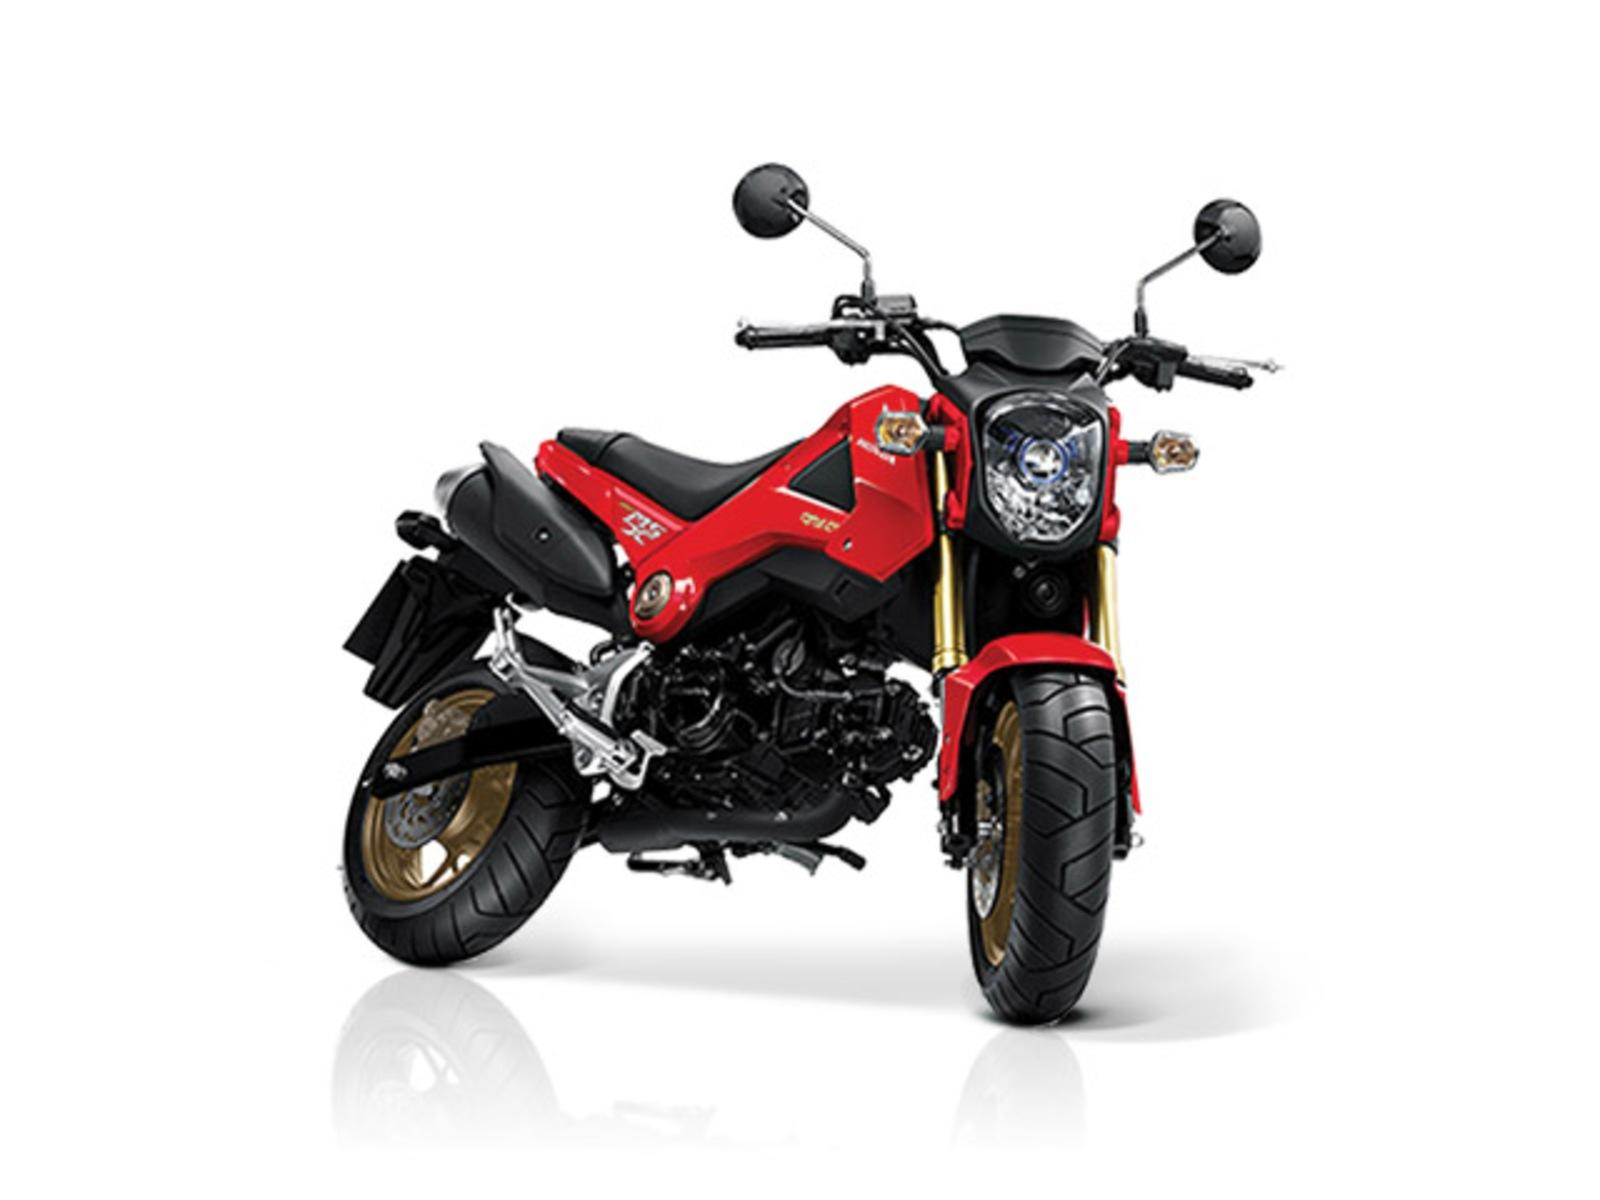 2014 honda msx125 review top speed. Black Bedroom Furniture Sets. Home Design Ideas